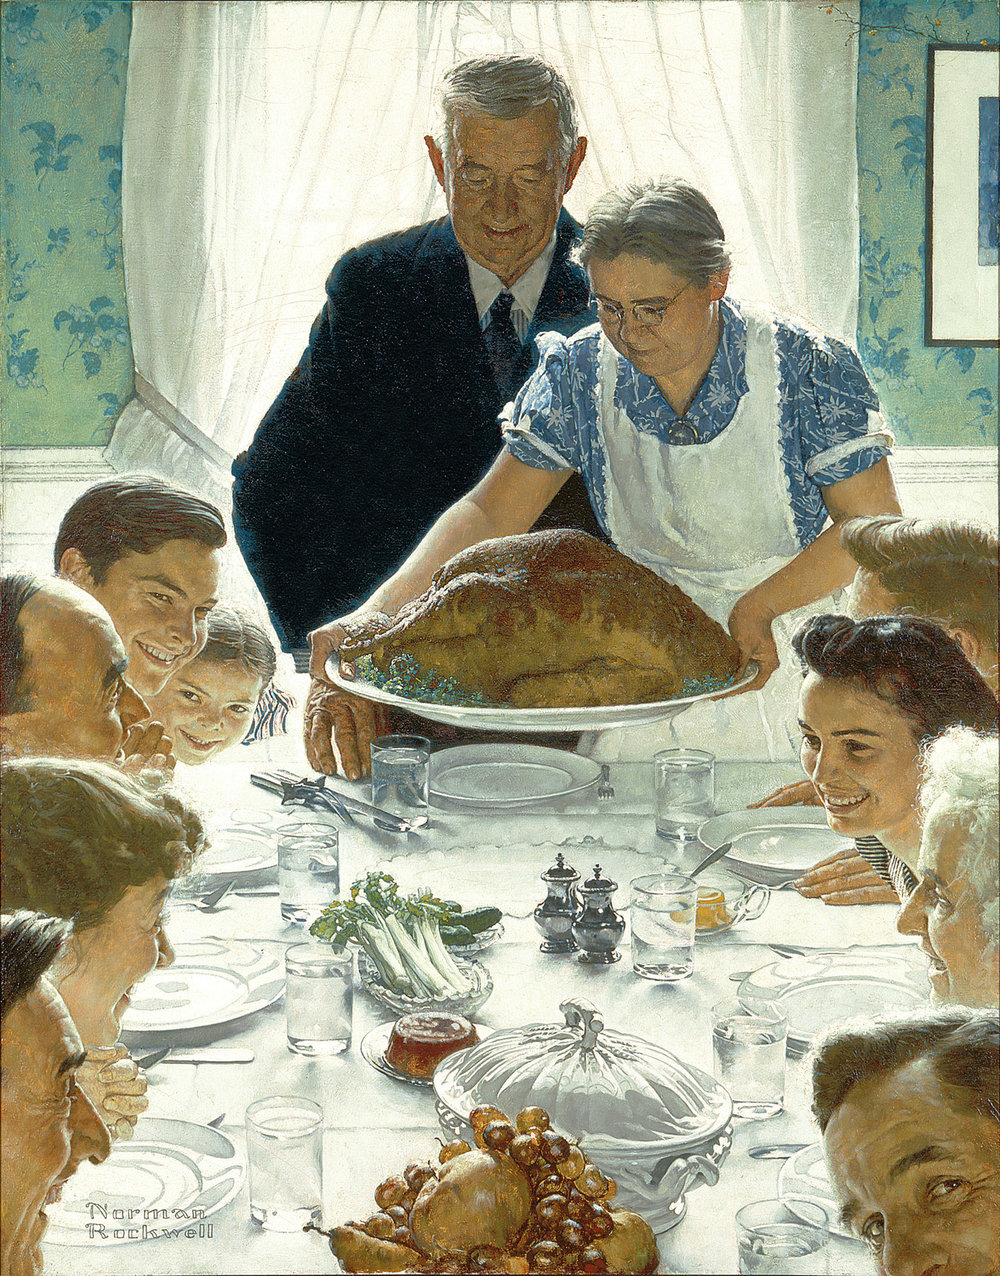 ThanksgivingSaysWereAwesome_Rockwell.jpg